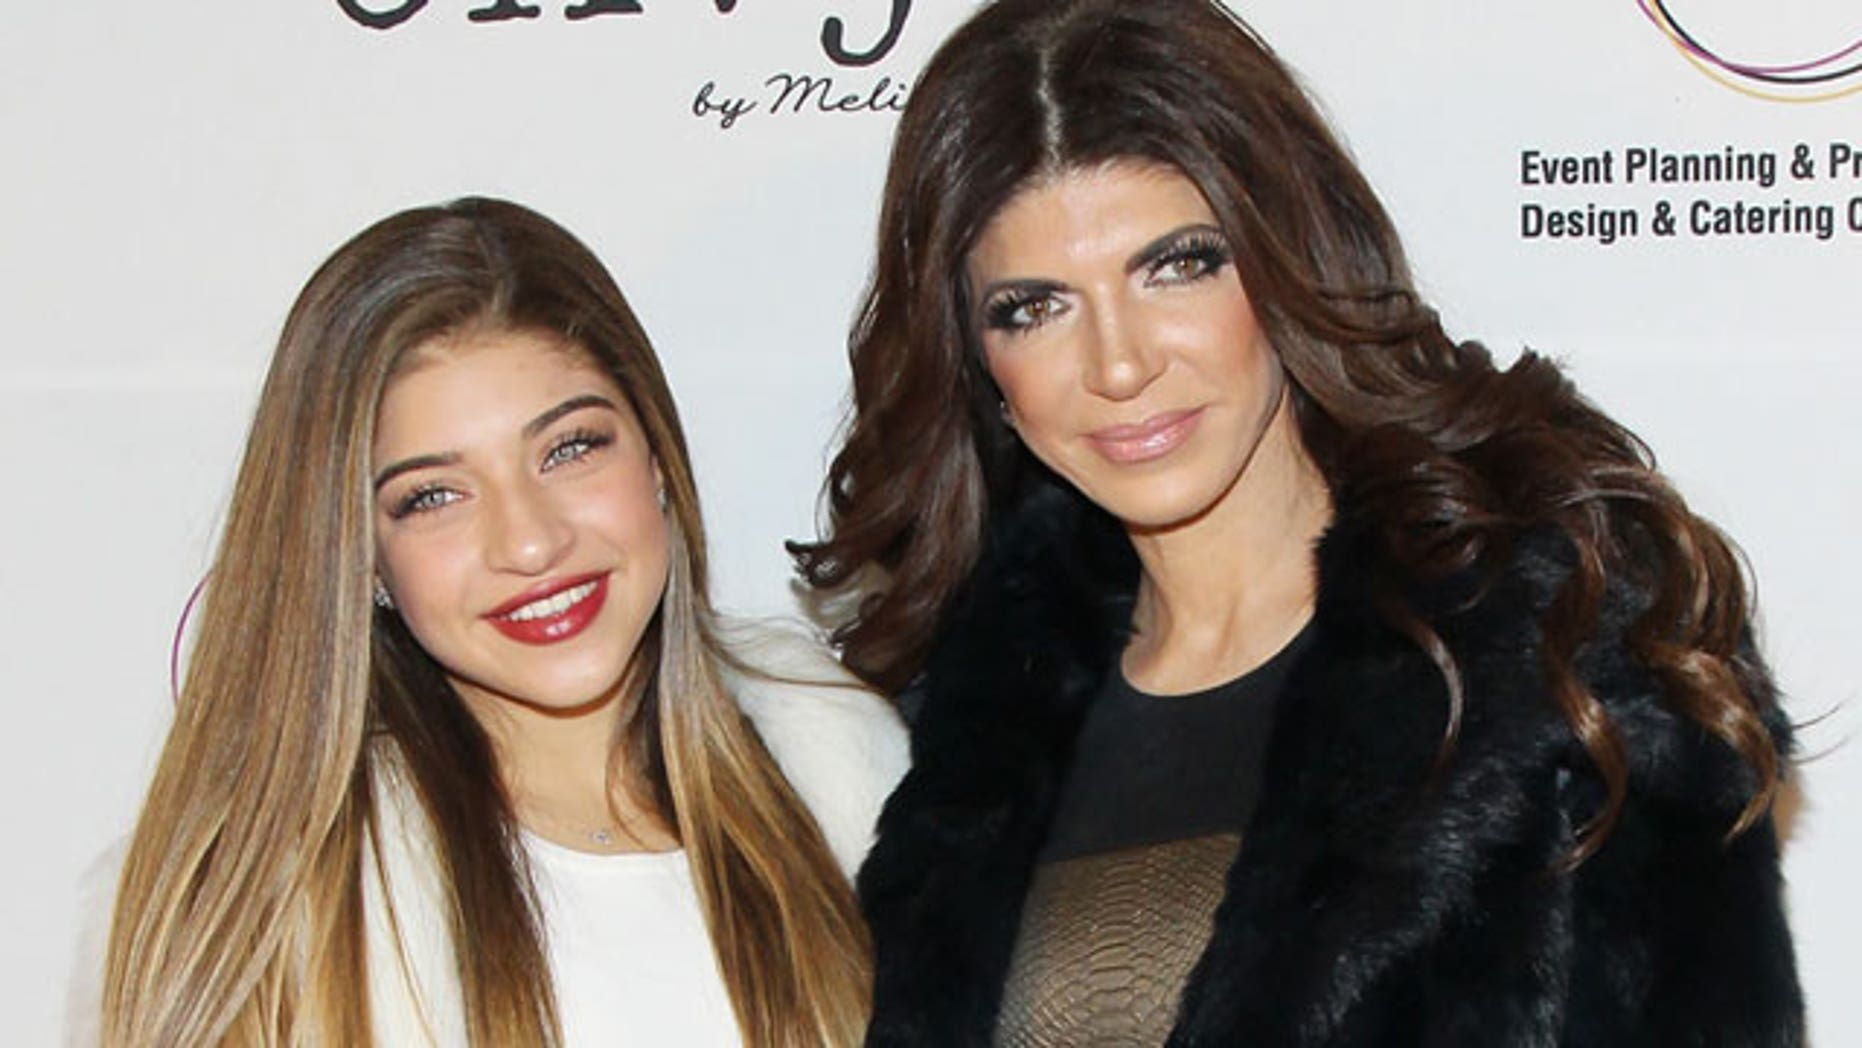 Teresa Giudice's 17-year-old daughter Gia broke her silence Friday on her father Joe's deportation ruling.